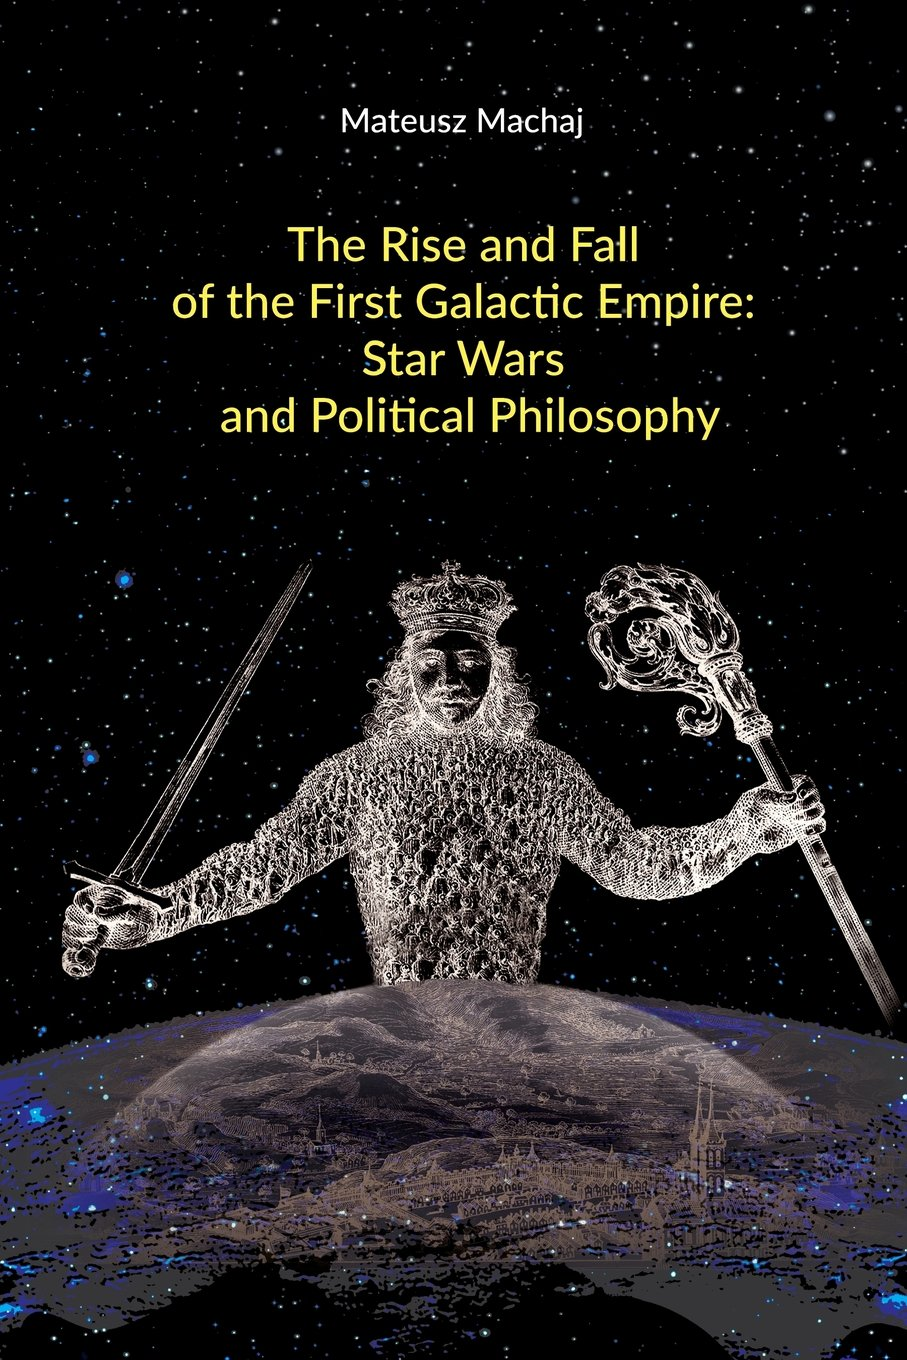 The Rise and Fall of the First Galactic Empire: Star Wars and Political Philosophy